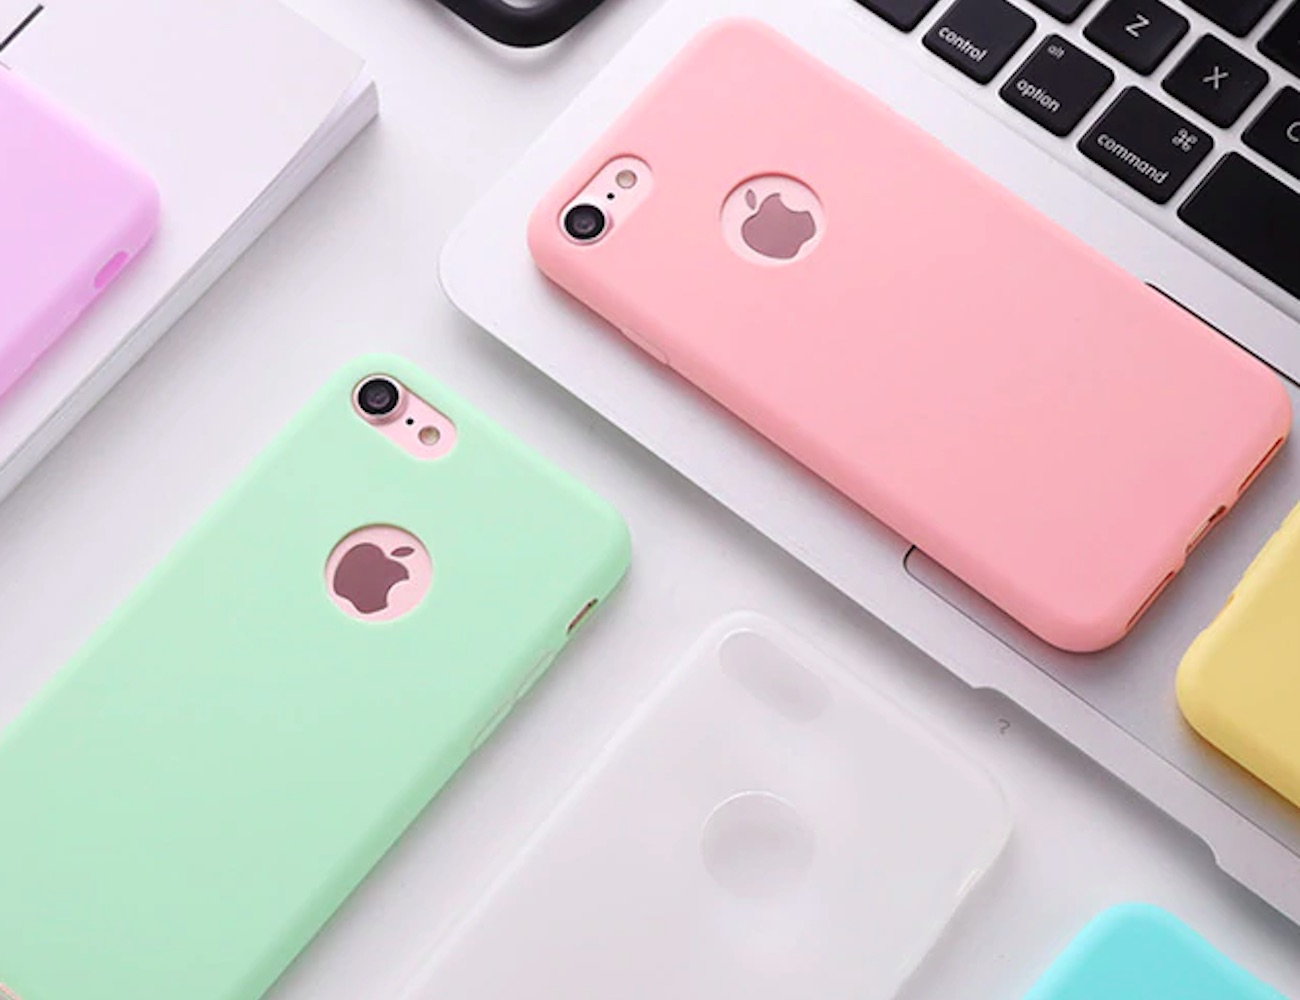 Candy Soft Silicone iPhone Case adds color to your every day